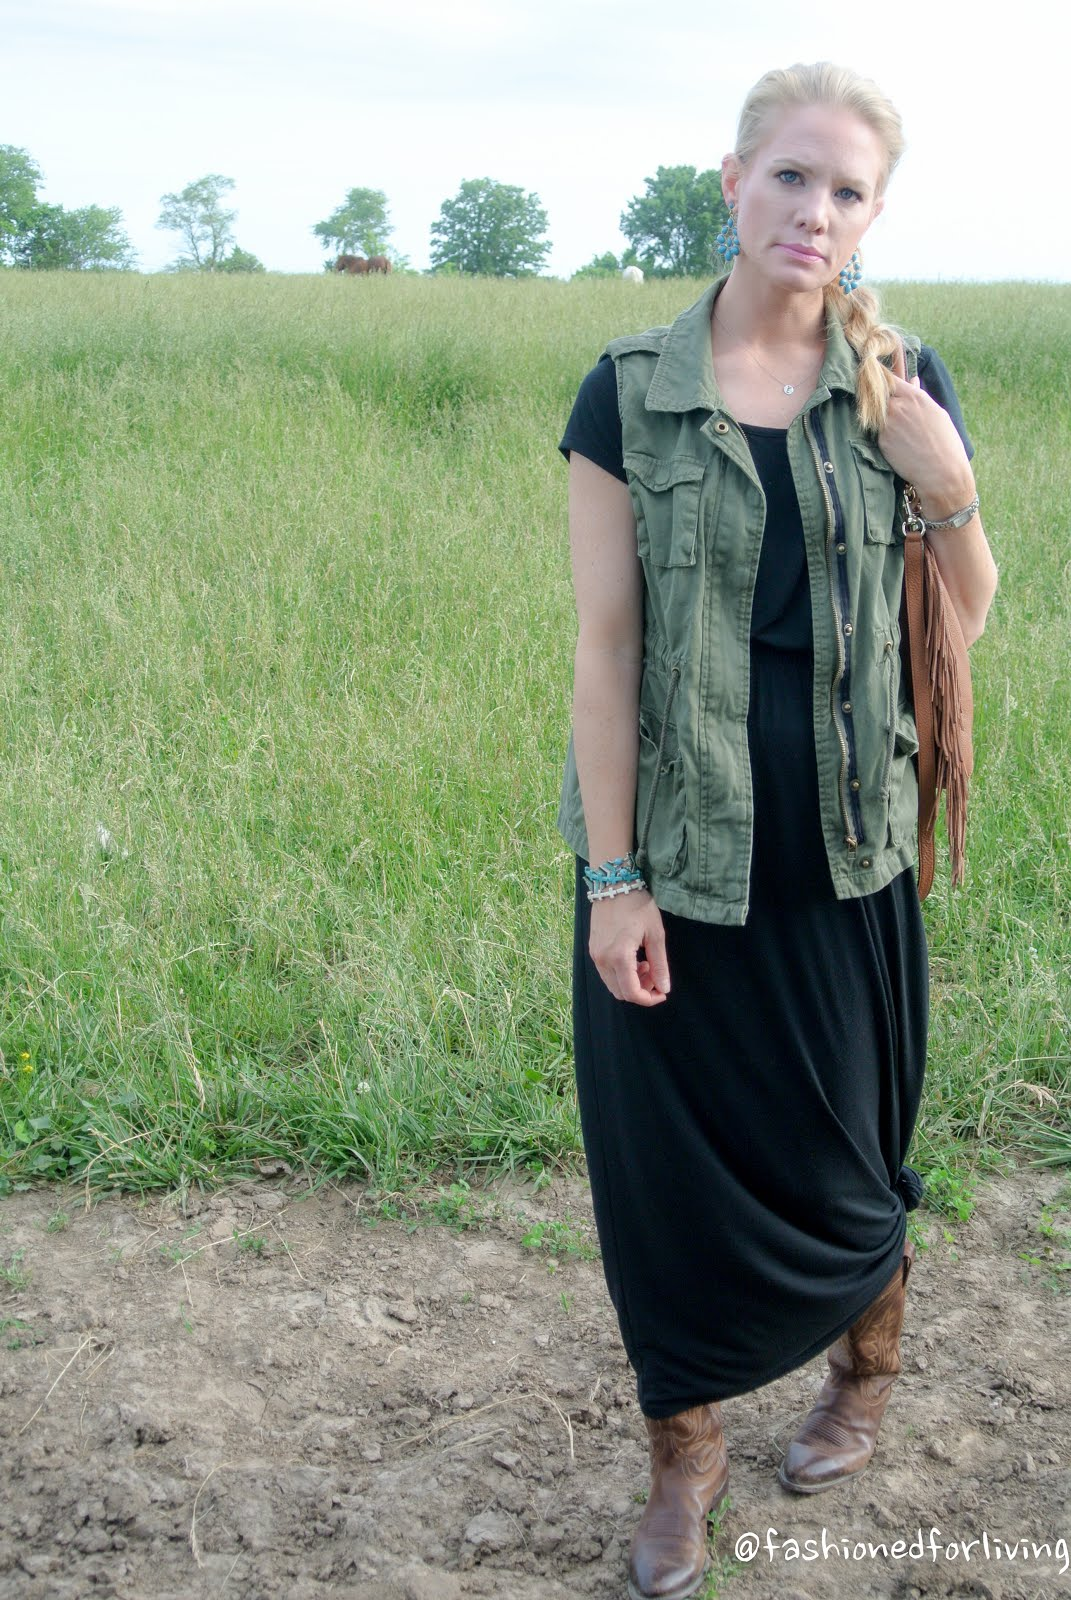 Black black t shirt maxi dress - Maxi Dress And Cowboy Boots Outfit With Military Vest And Fringe Bag T Shirt Dresses